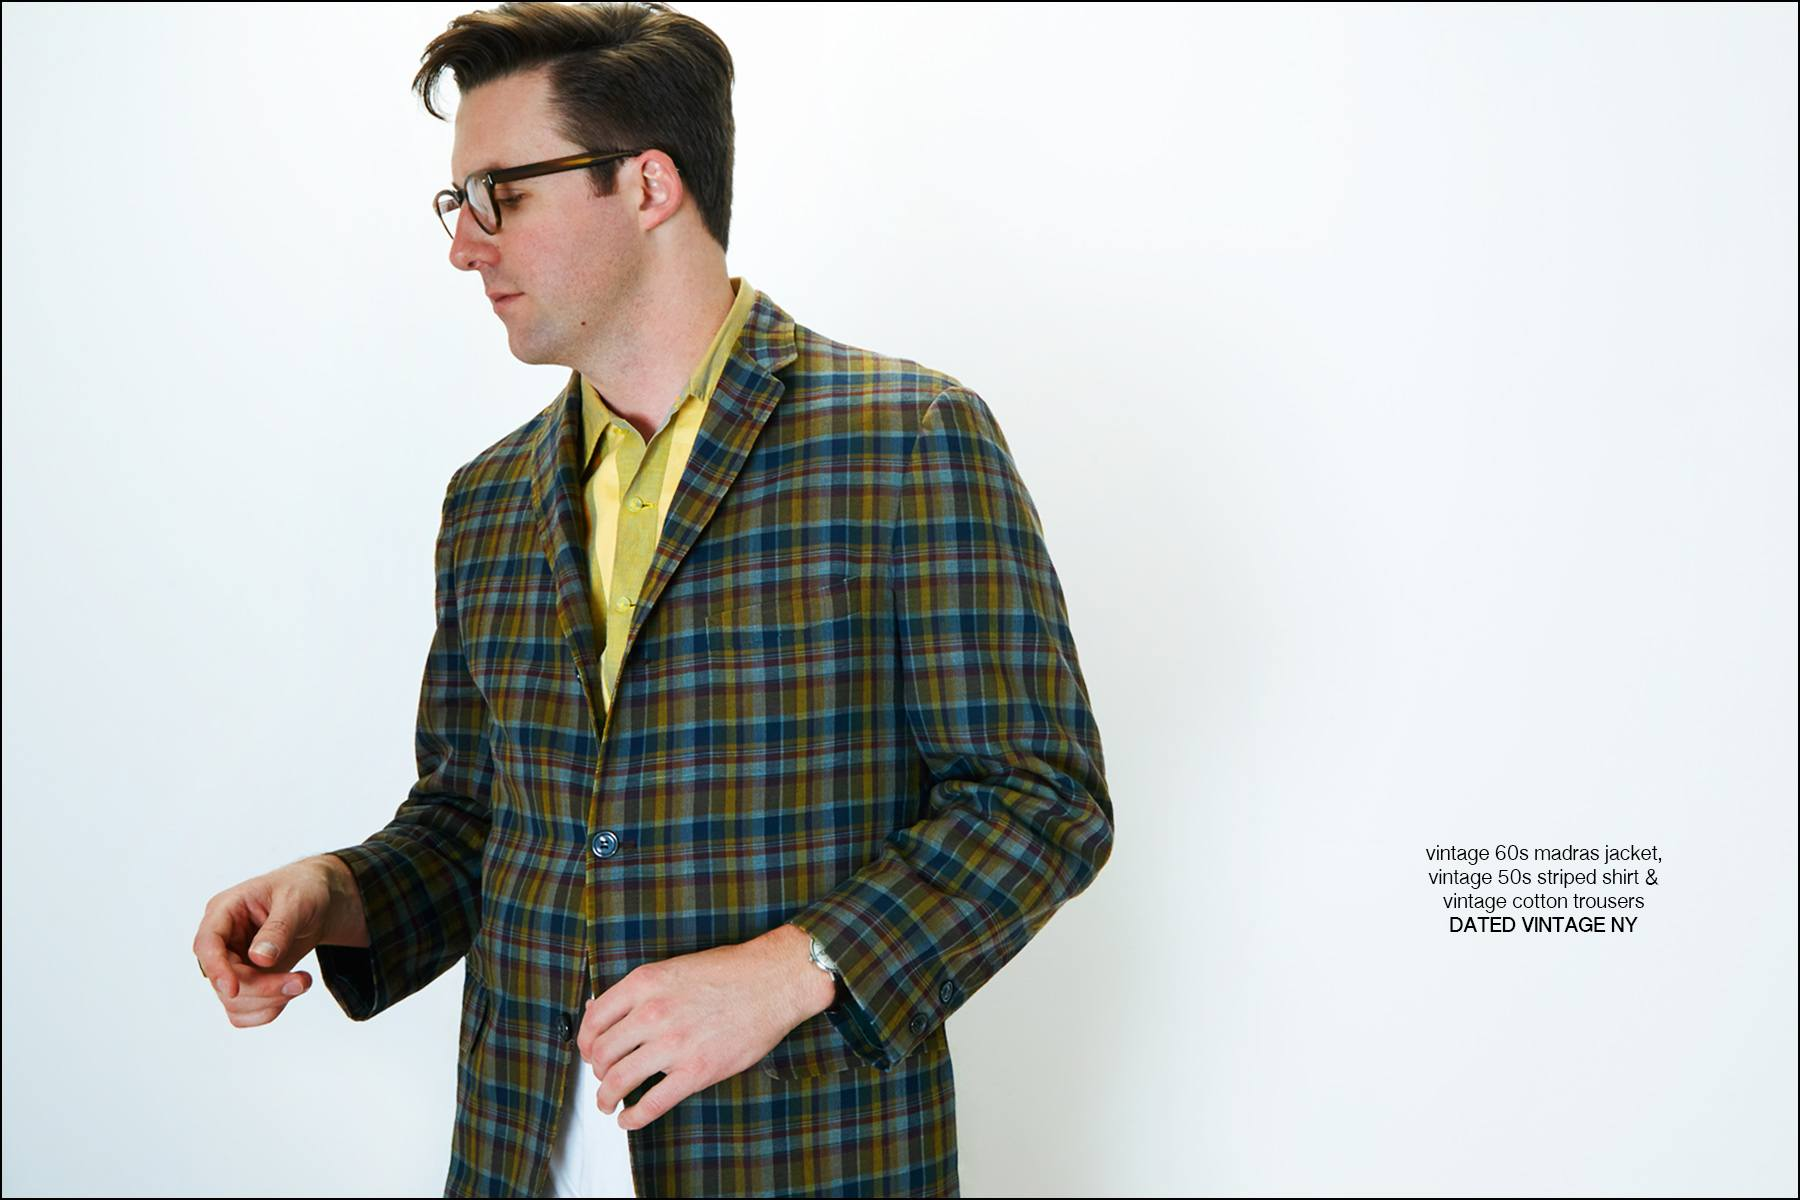 Muscian/dj Nick Waterhouse photographed in vintage menswear from Dated Vintage NY. Photography by Alexander Thompson for Ponyboy magazine New York.